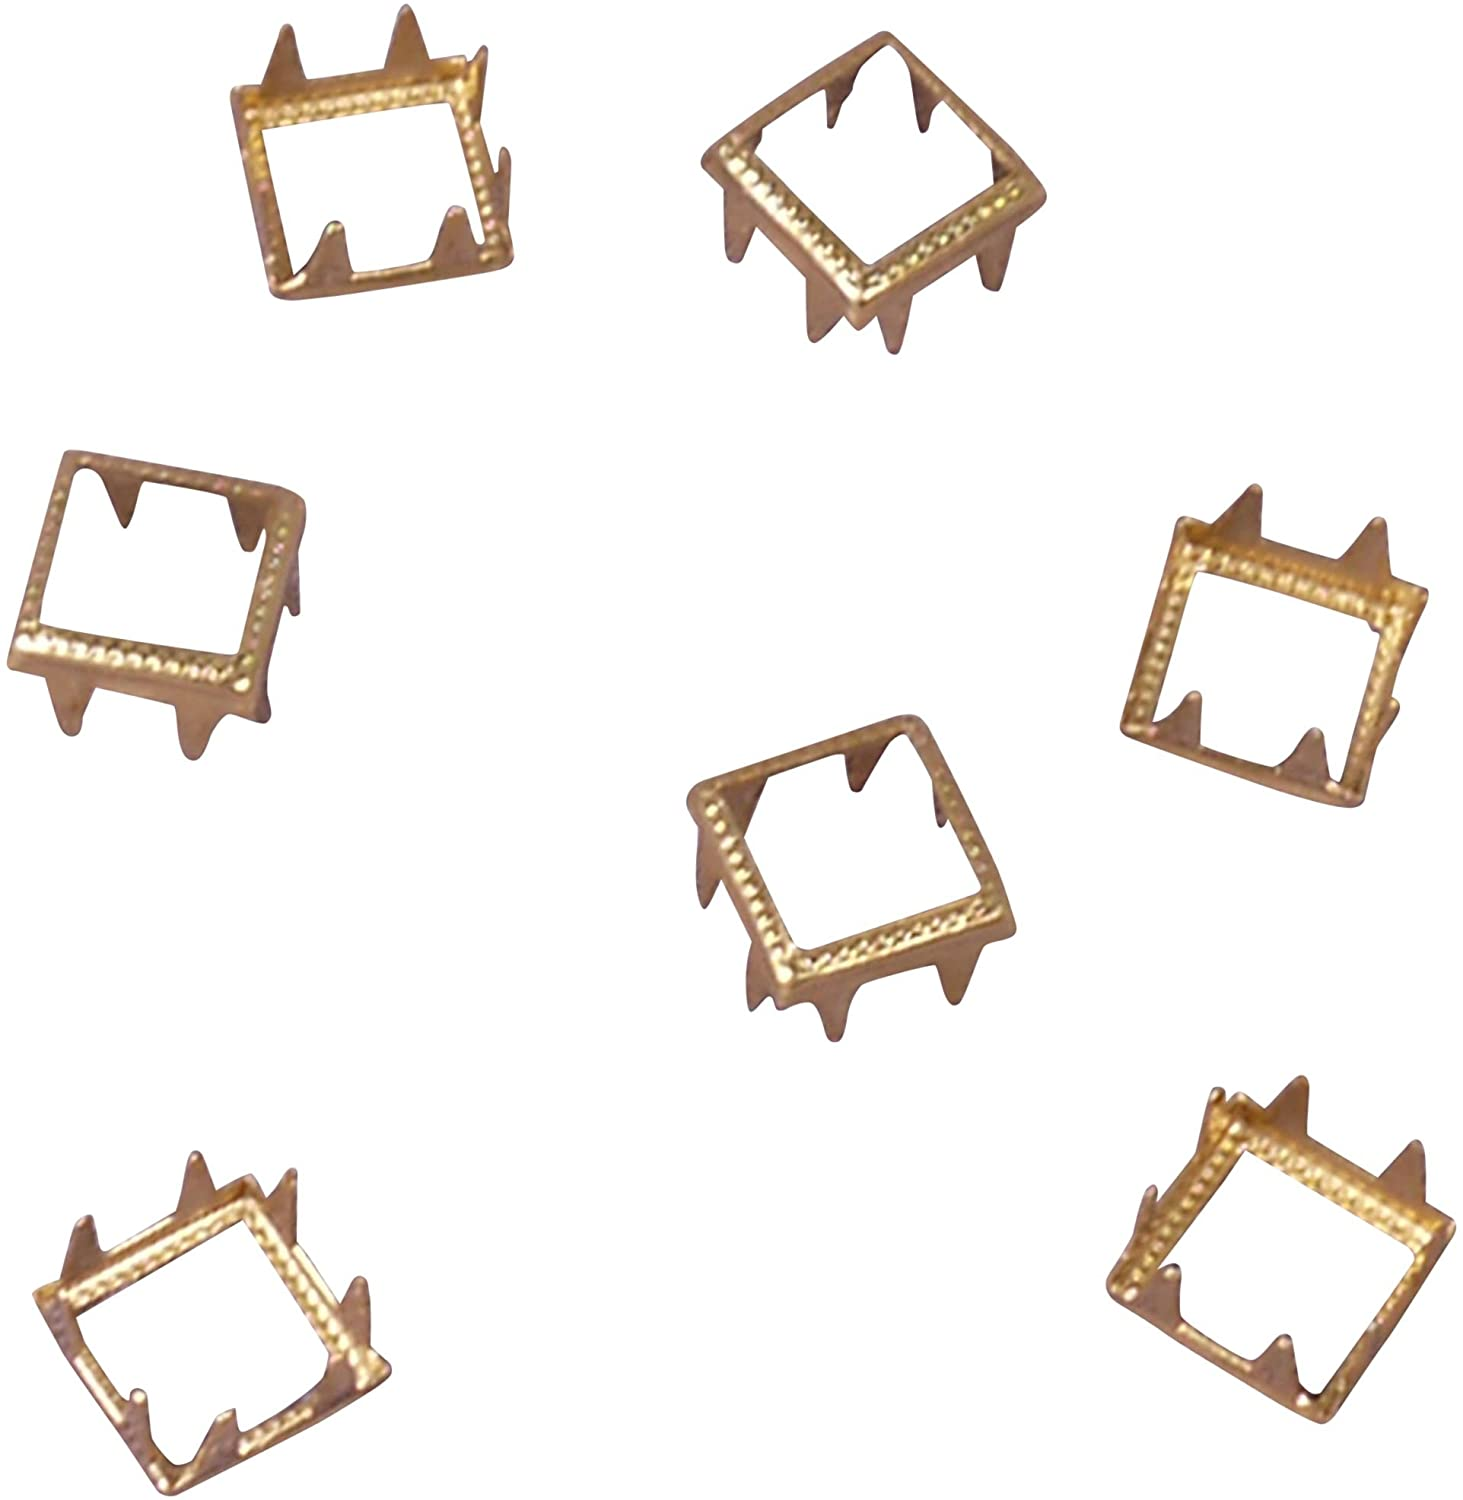 Porcelynne Gold Metal Square Open Decorative Vintage Studs Leathercraft DIY Punk Spikes Spots Studs Goth Nailhead - 13mm - 500 Pieces